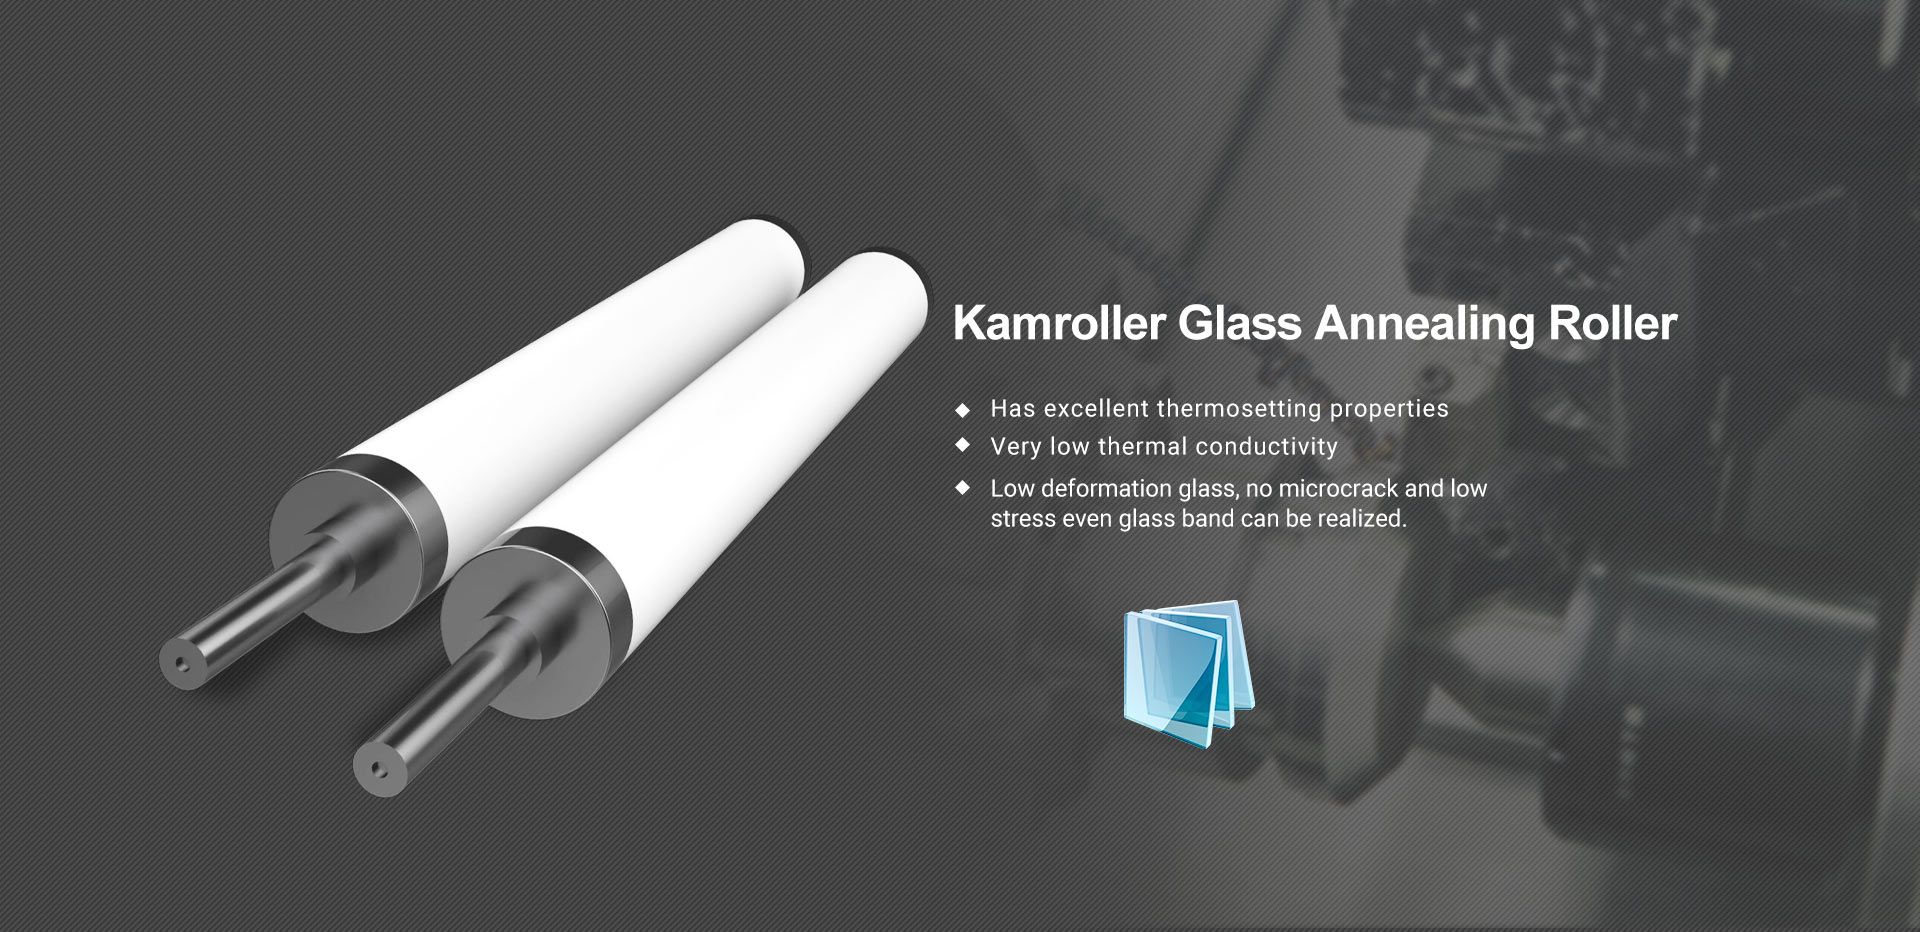 Kamroller Glass Annealing Roller